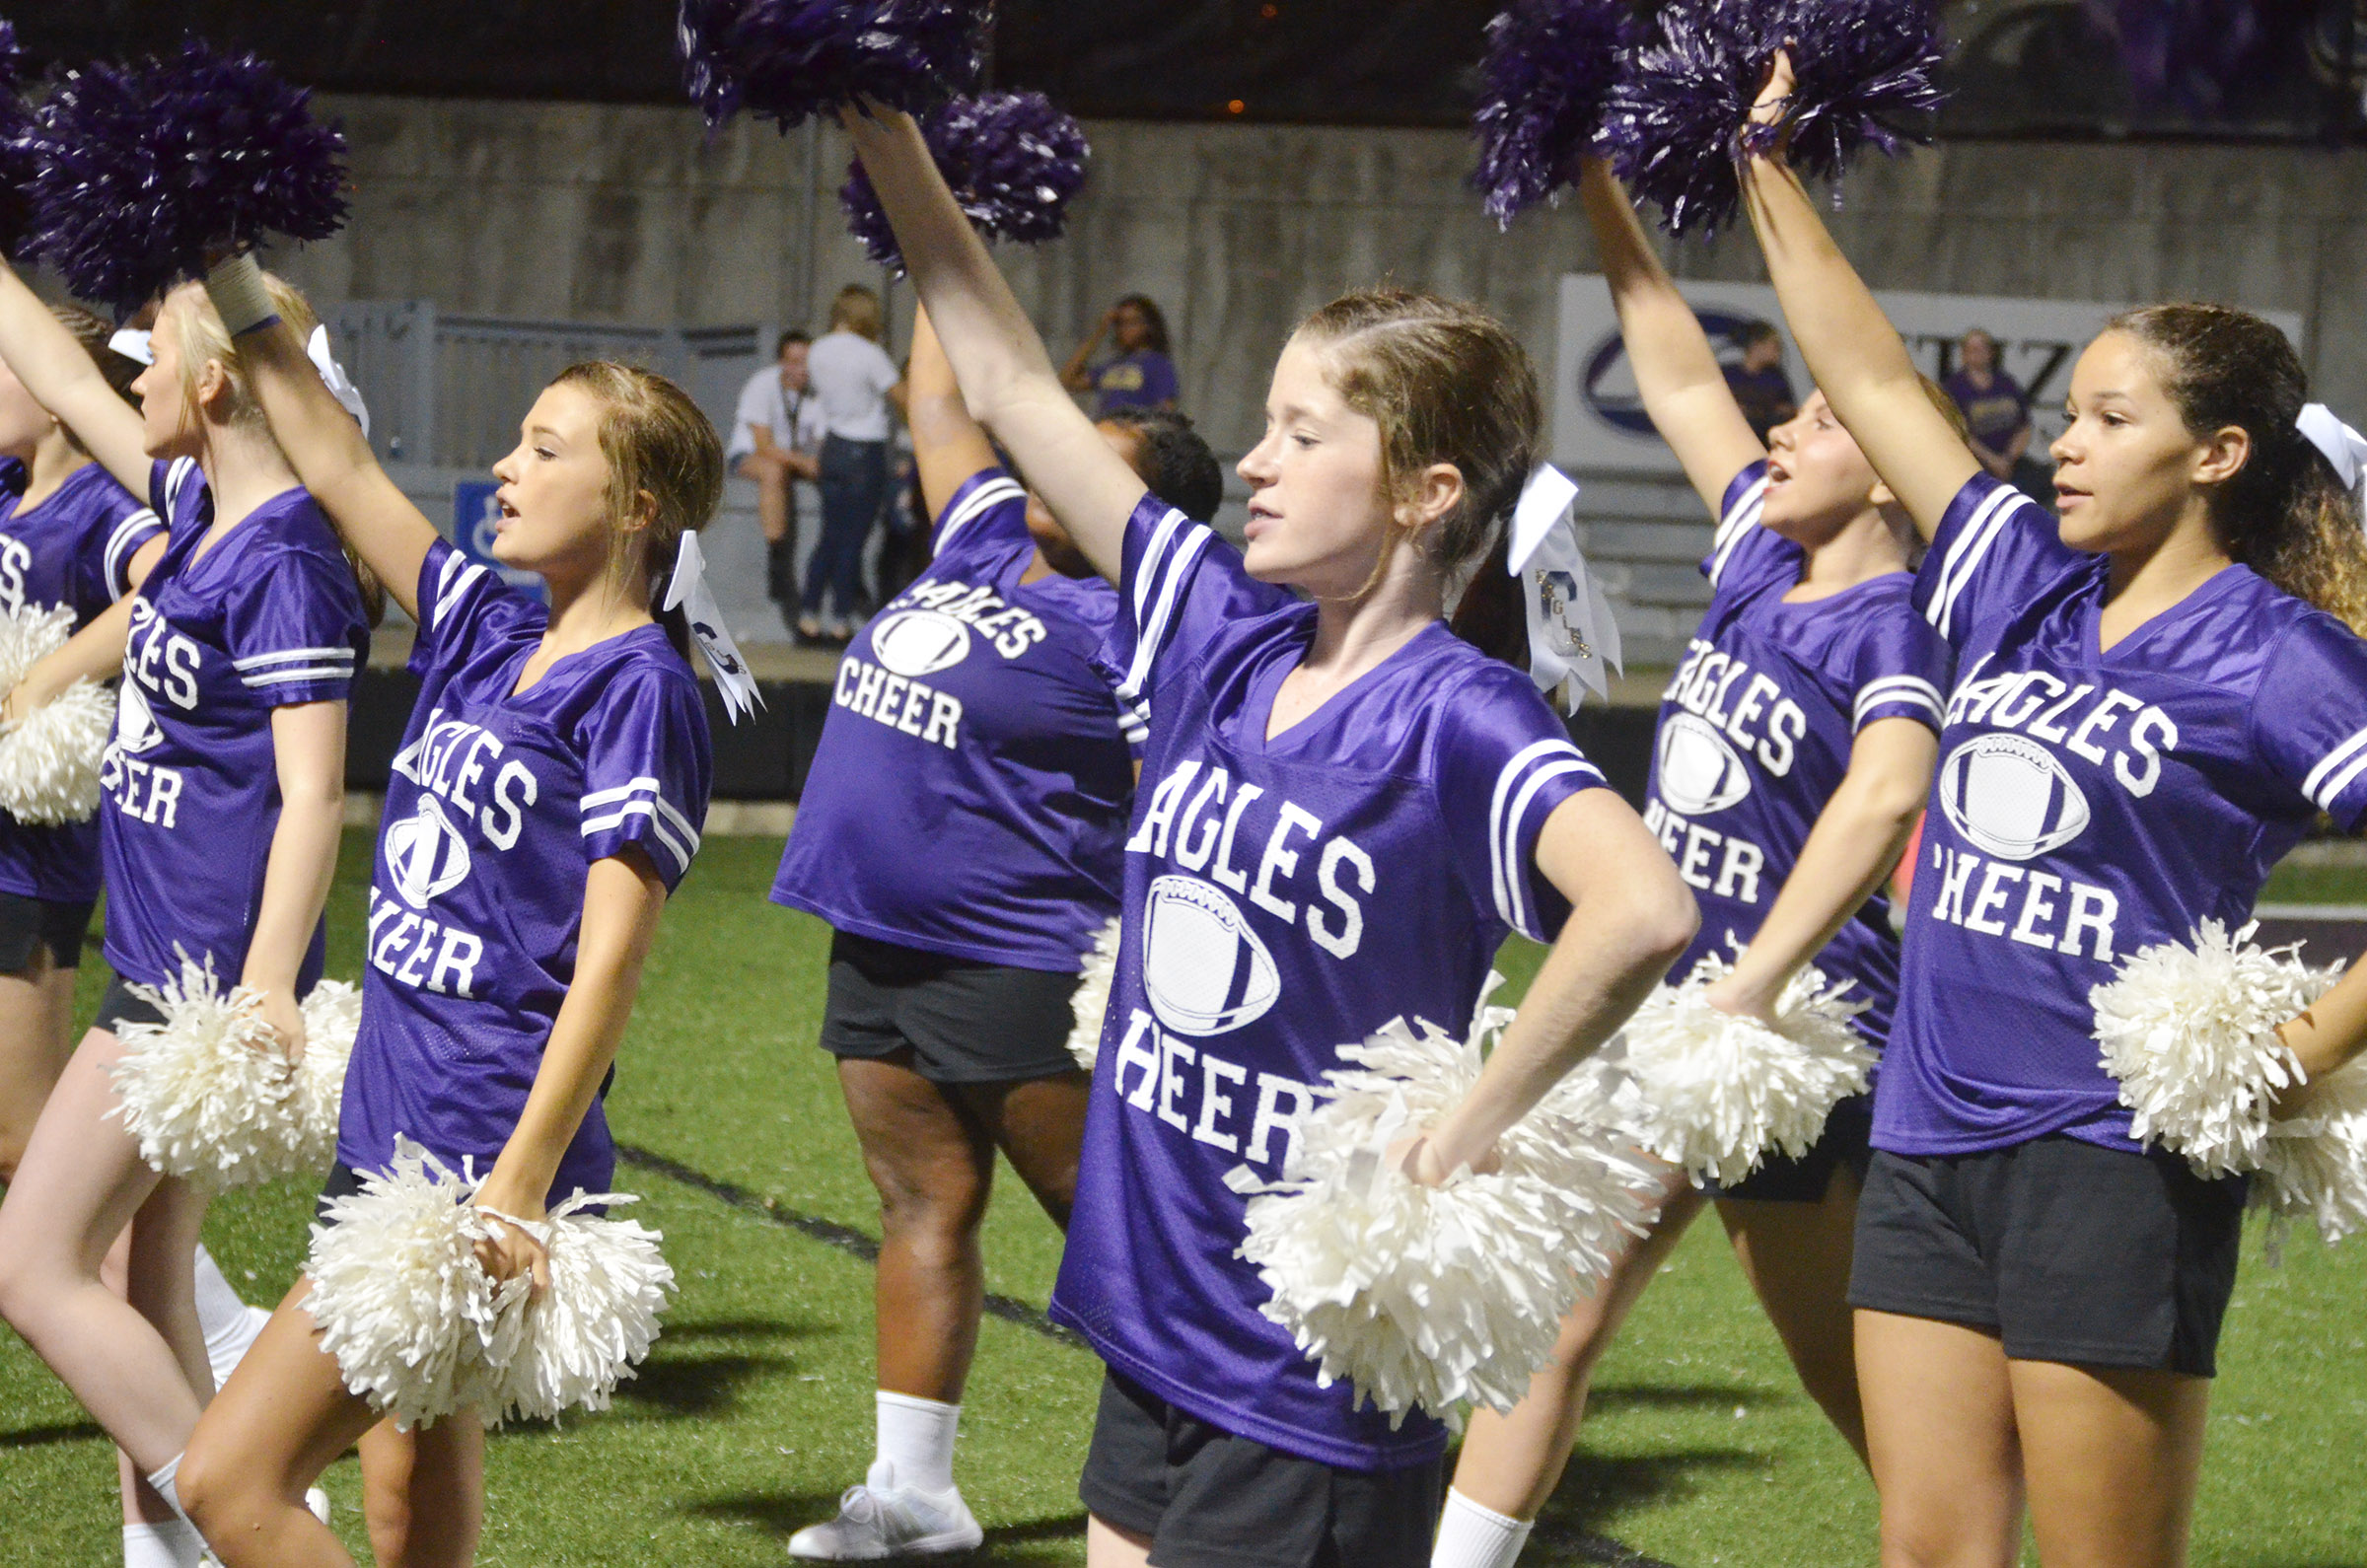 CHS cheerleaders cheer for the Eagles.